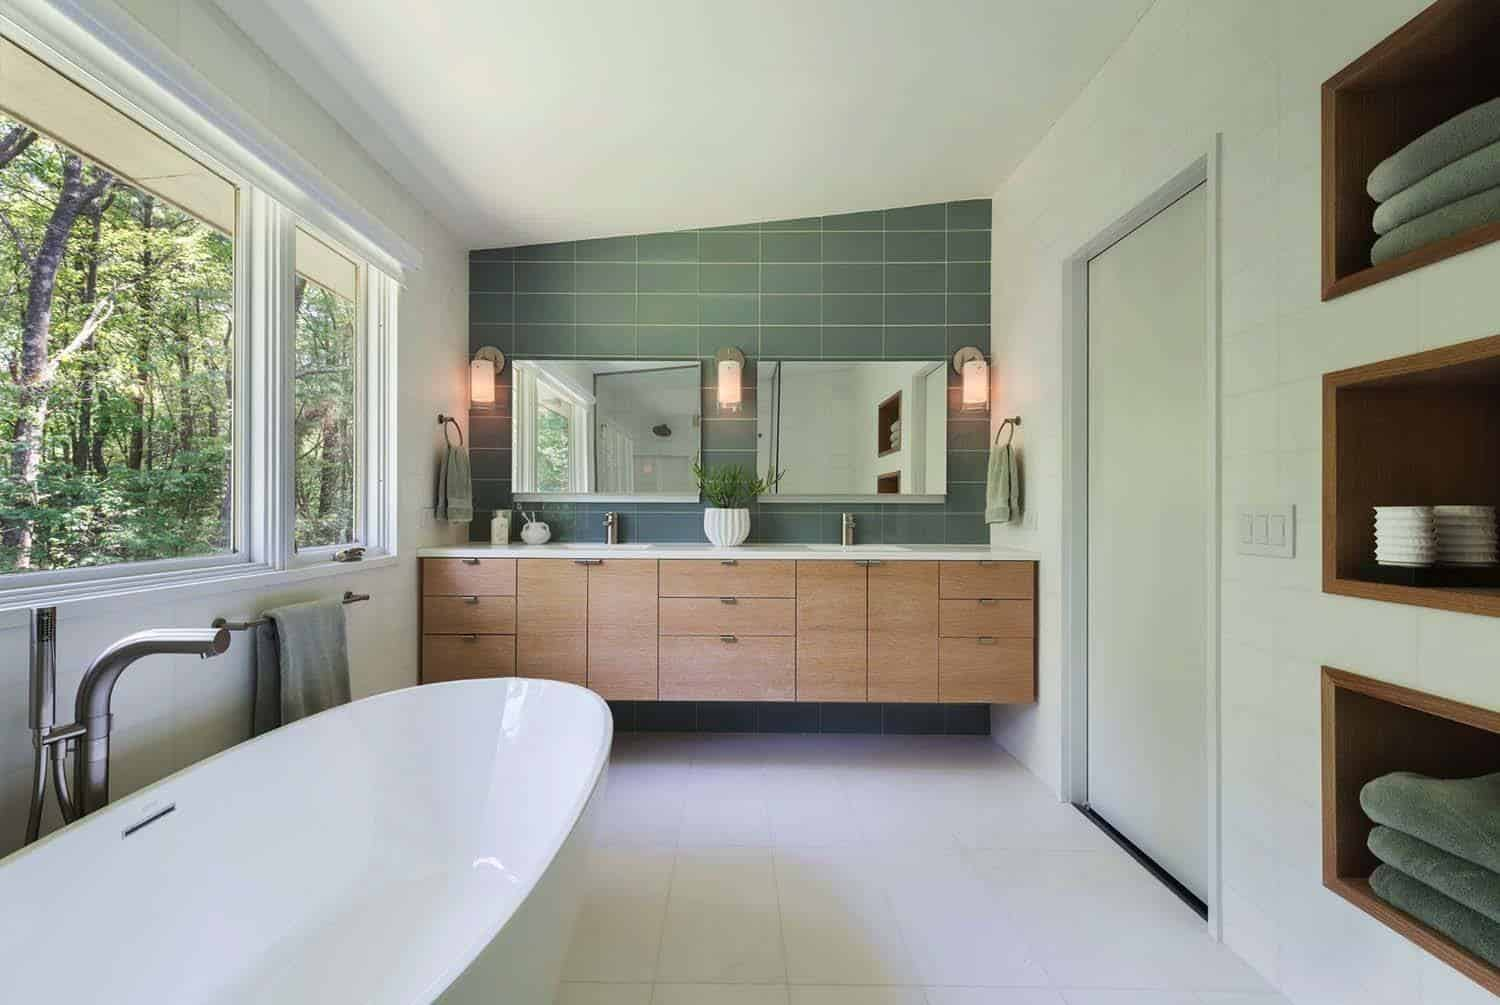 Modern Bathroom Design Ideas: 37 Amazing Mid-century Modern Bathrooms To Soak Your Senses